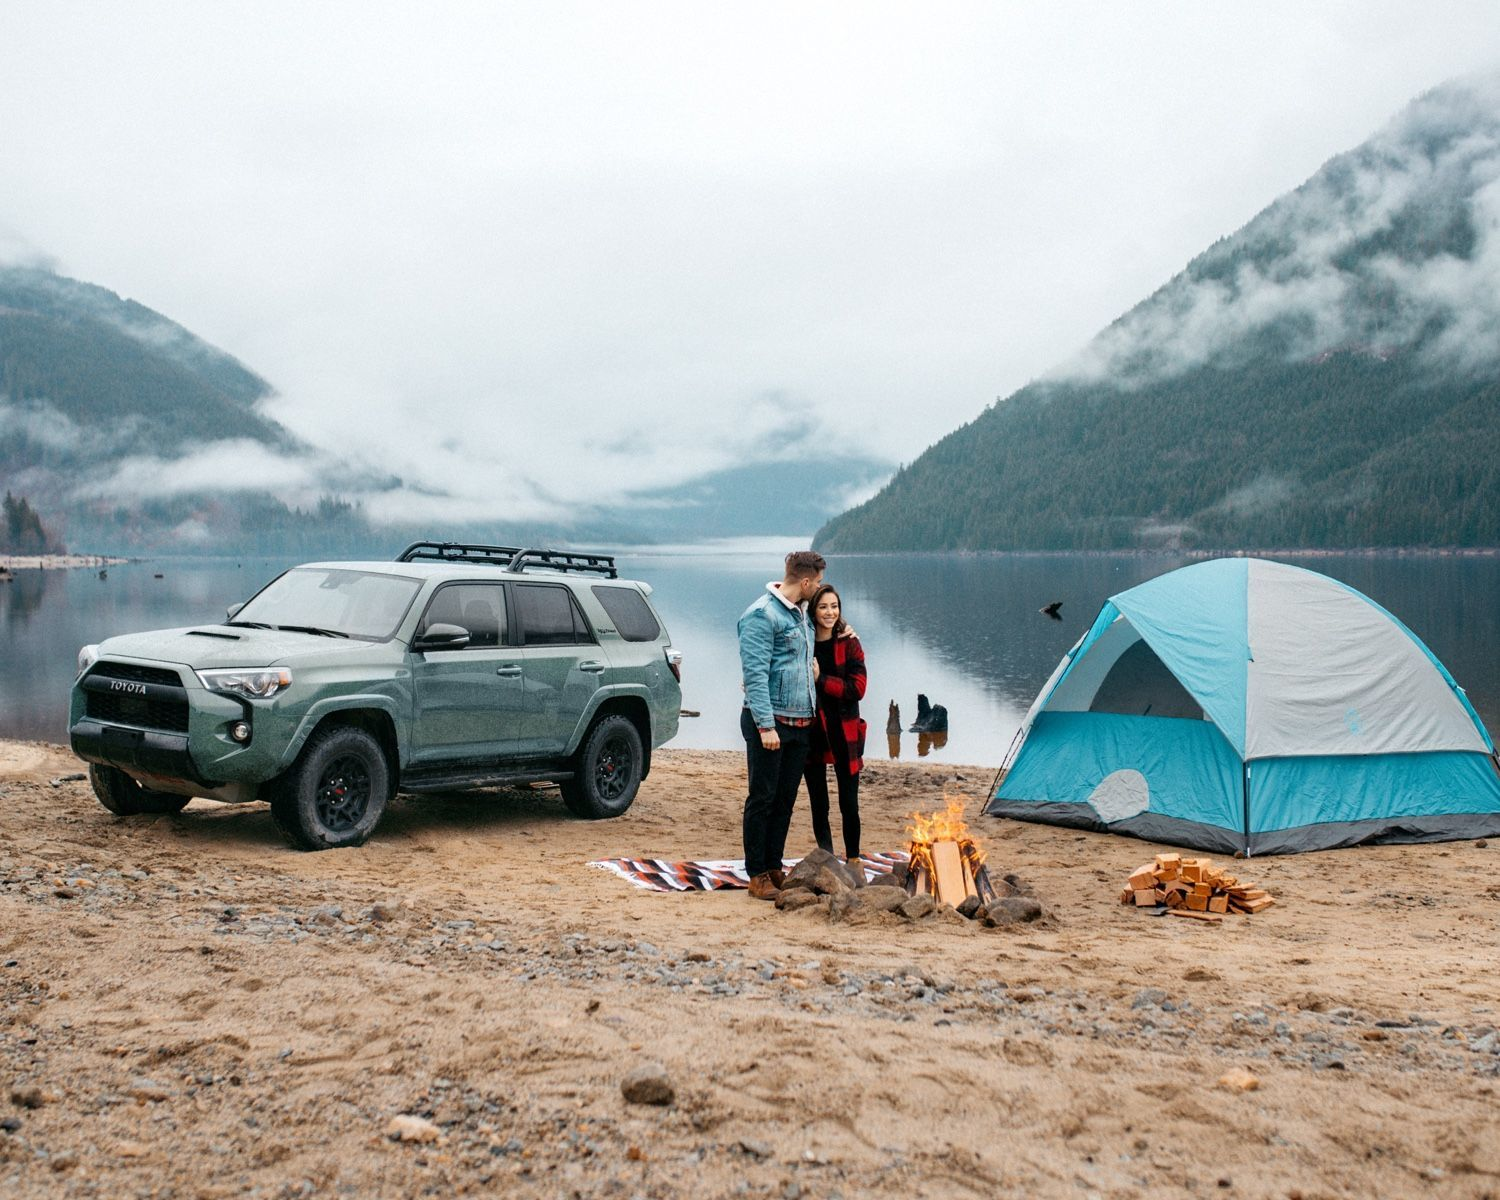 4Runner TRD Pro shown in Lunar Rock with a couple camping on a beach